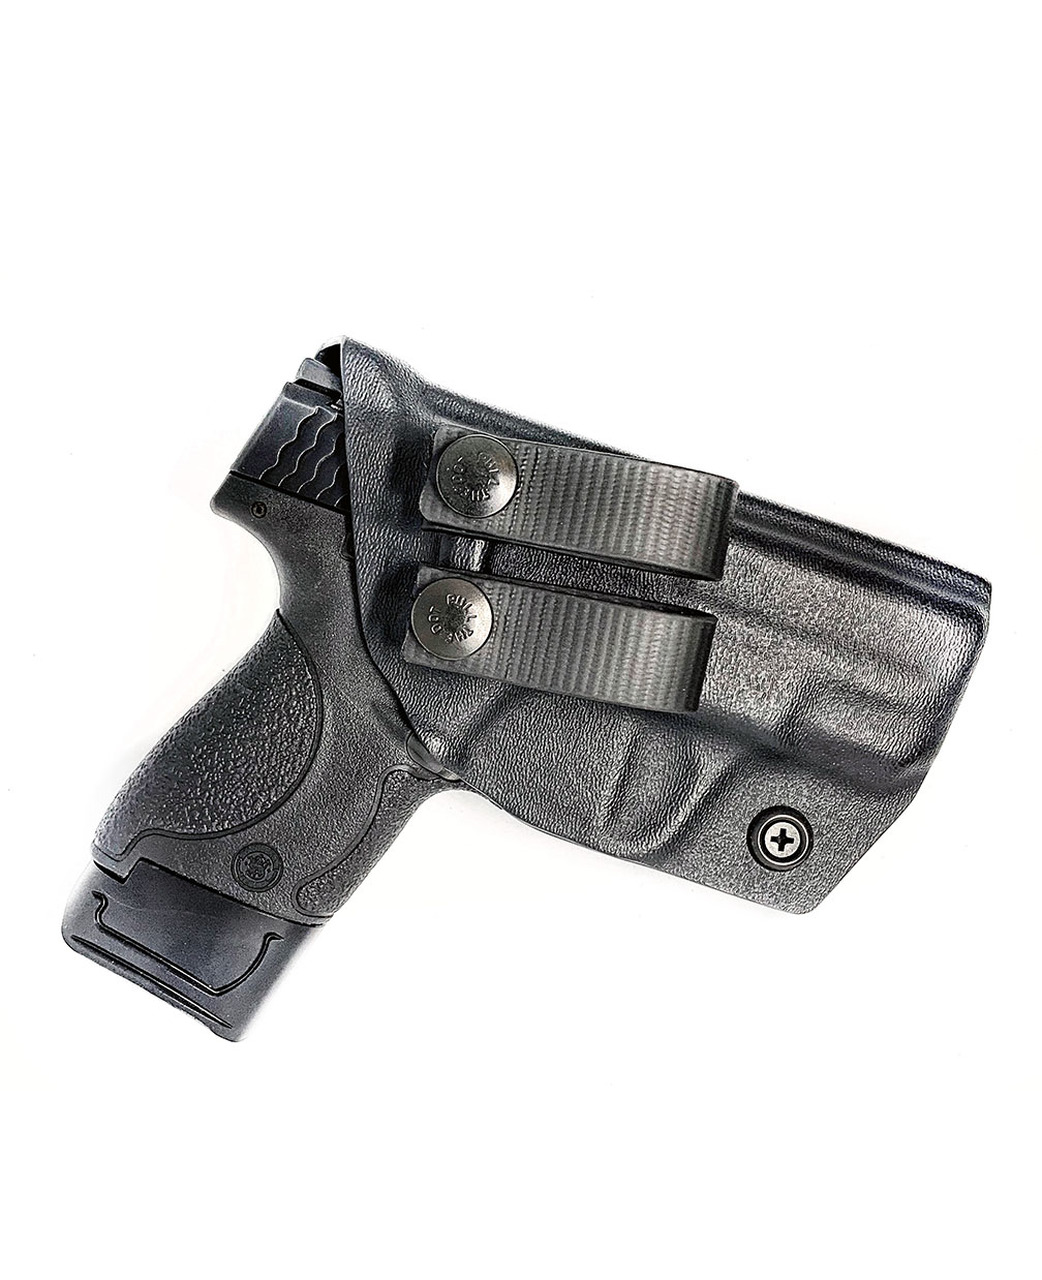 iwb-holster-custom.jpg